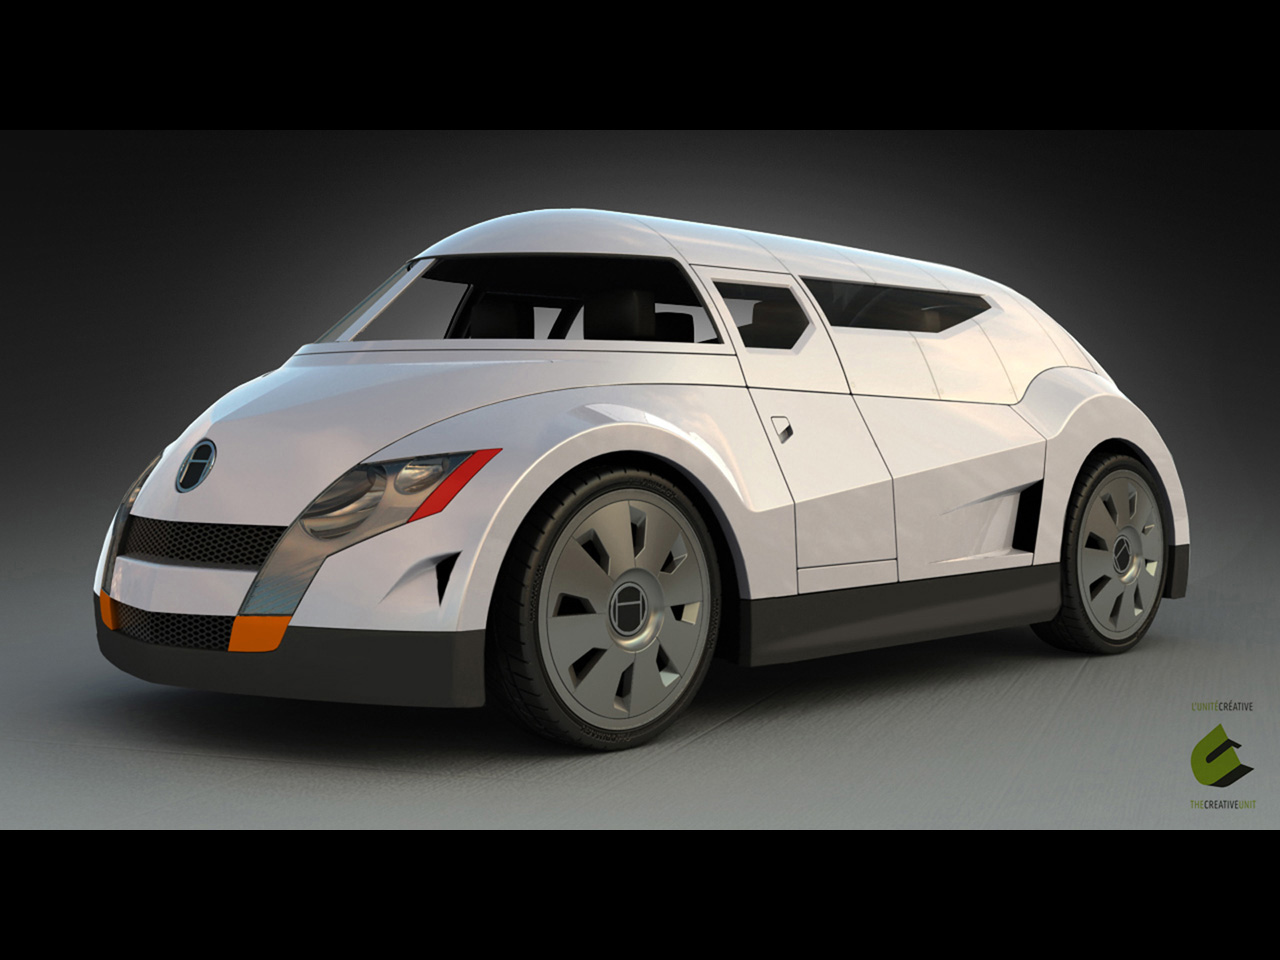 ... Coolest Concept Cars That Will Never Hit The Road! « Junk Car Nation